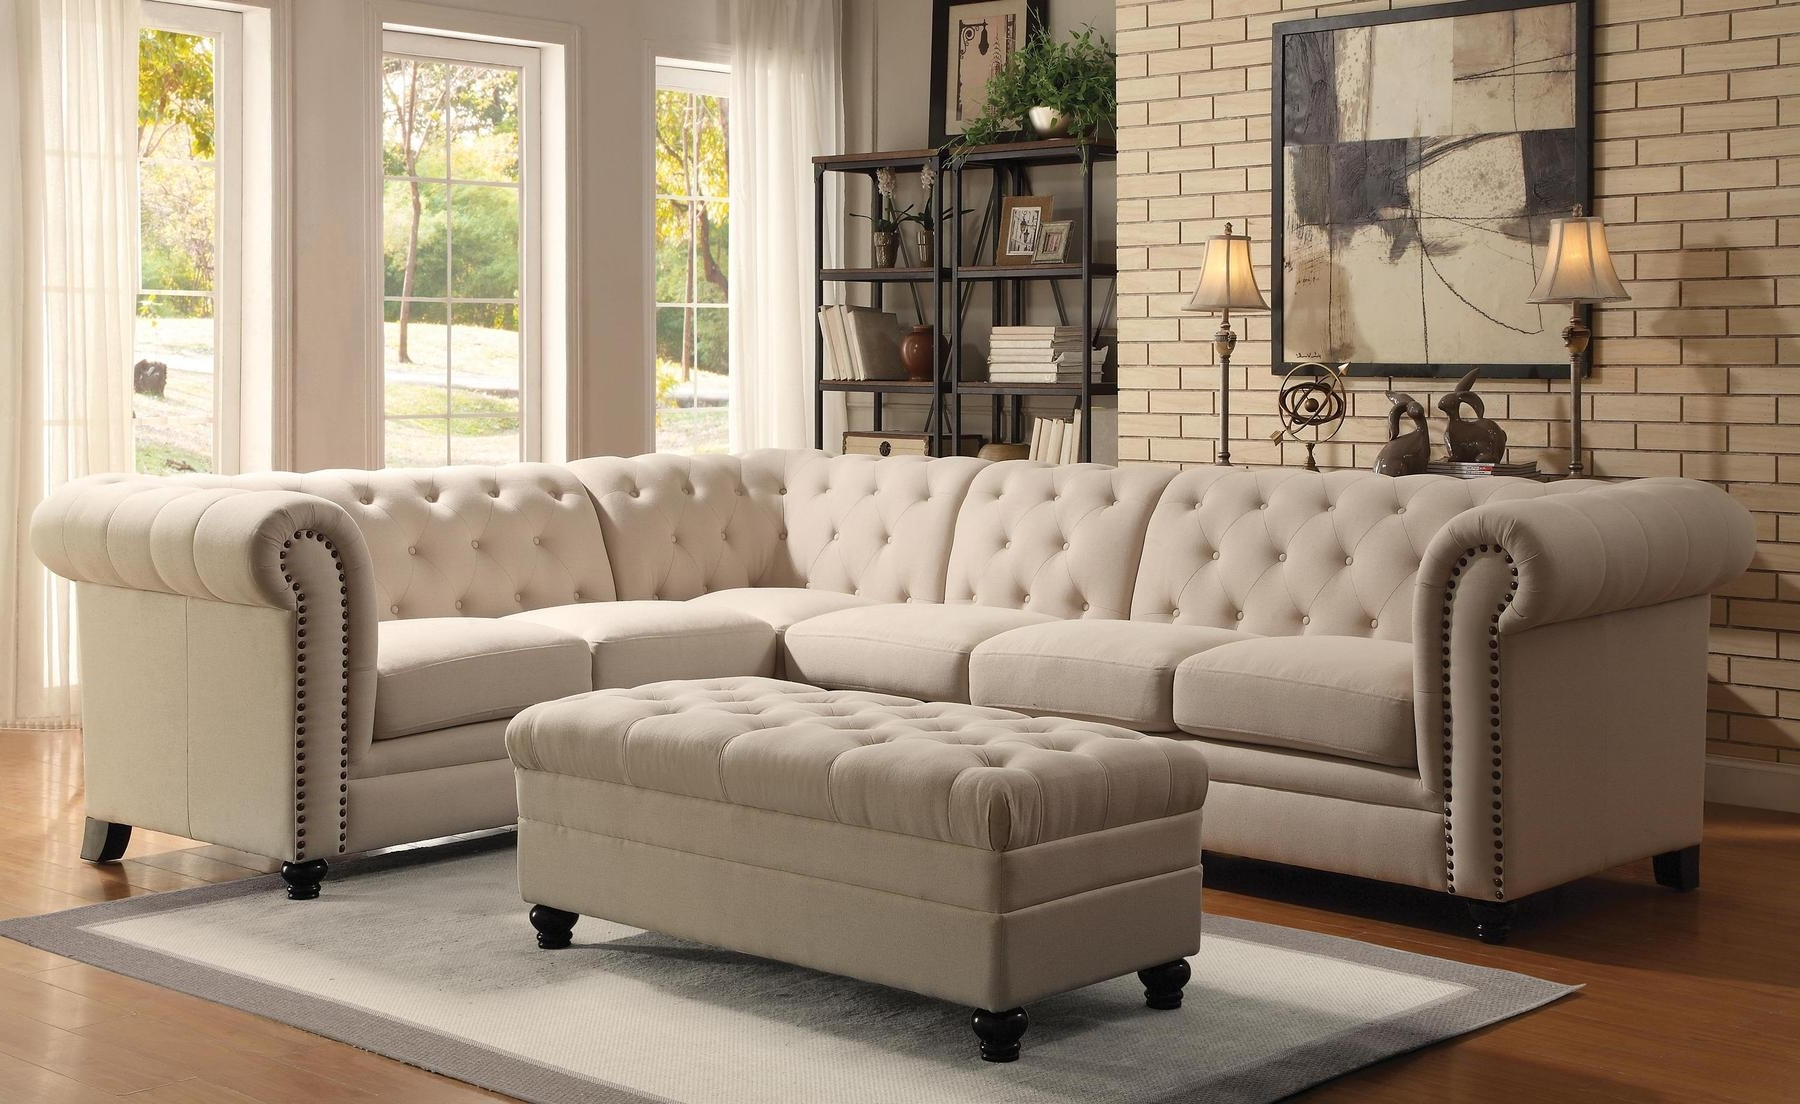 Roy Oatmeal Sectional Sofa 500222 Coaster Furniture Sectional For Most Up To Date Quality Sectional Sofas (View 12 of 20)